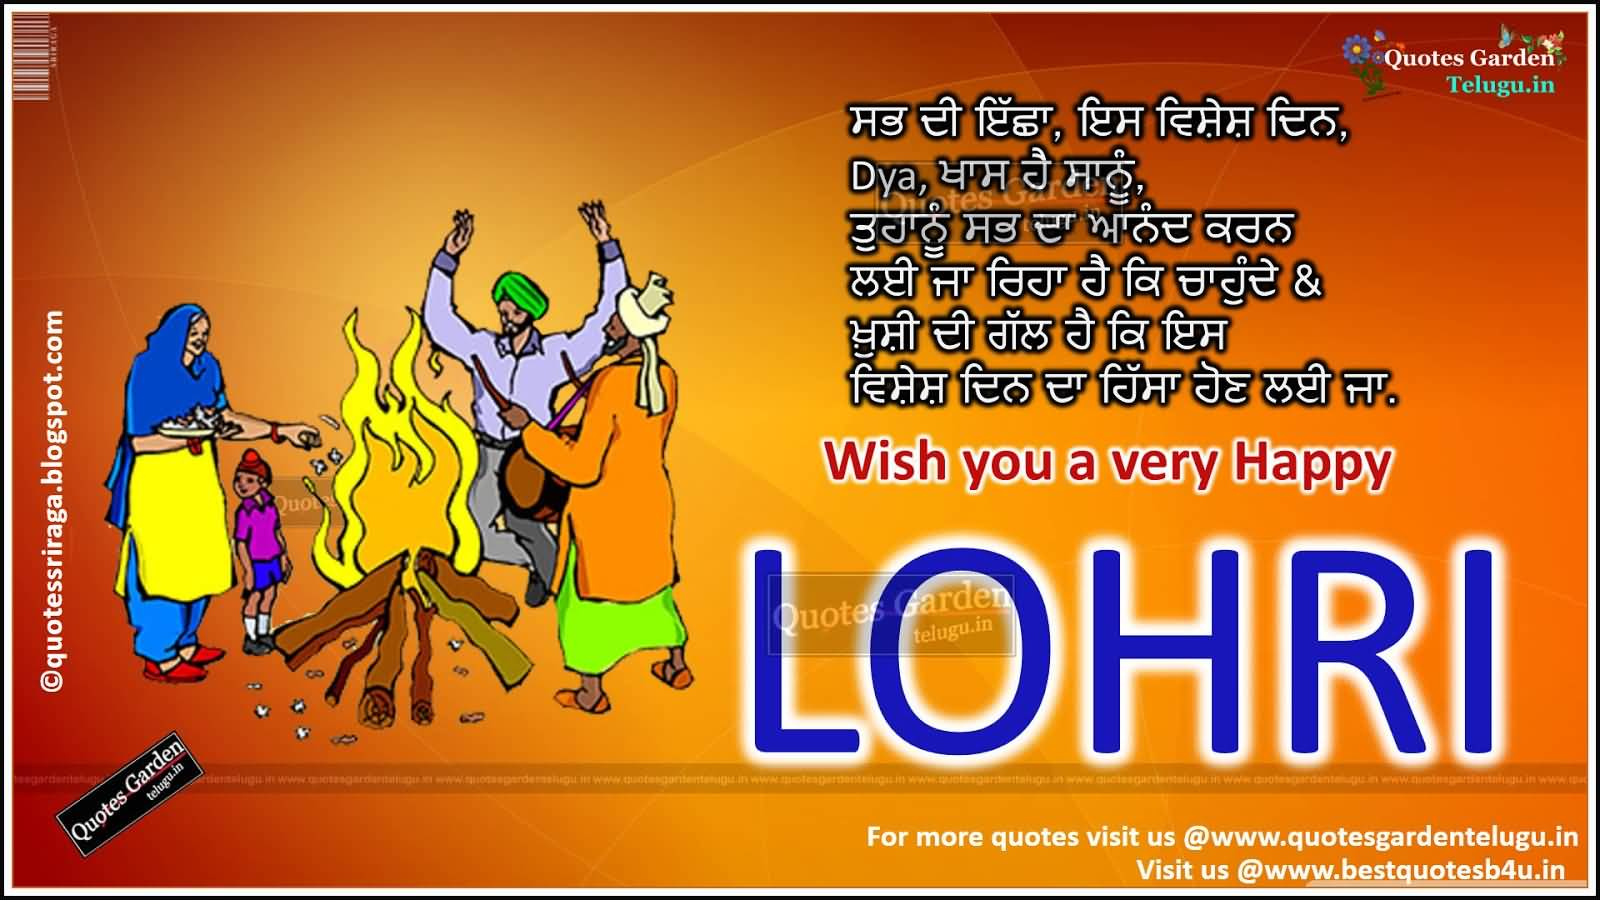 Happy lohri wallpapers with quotes labzada wallpaper lohri images source 55 happy lohri greetings sms images quotes wallpapers picsmine m4hsunfo